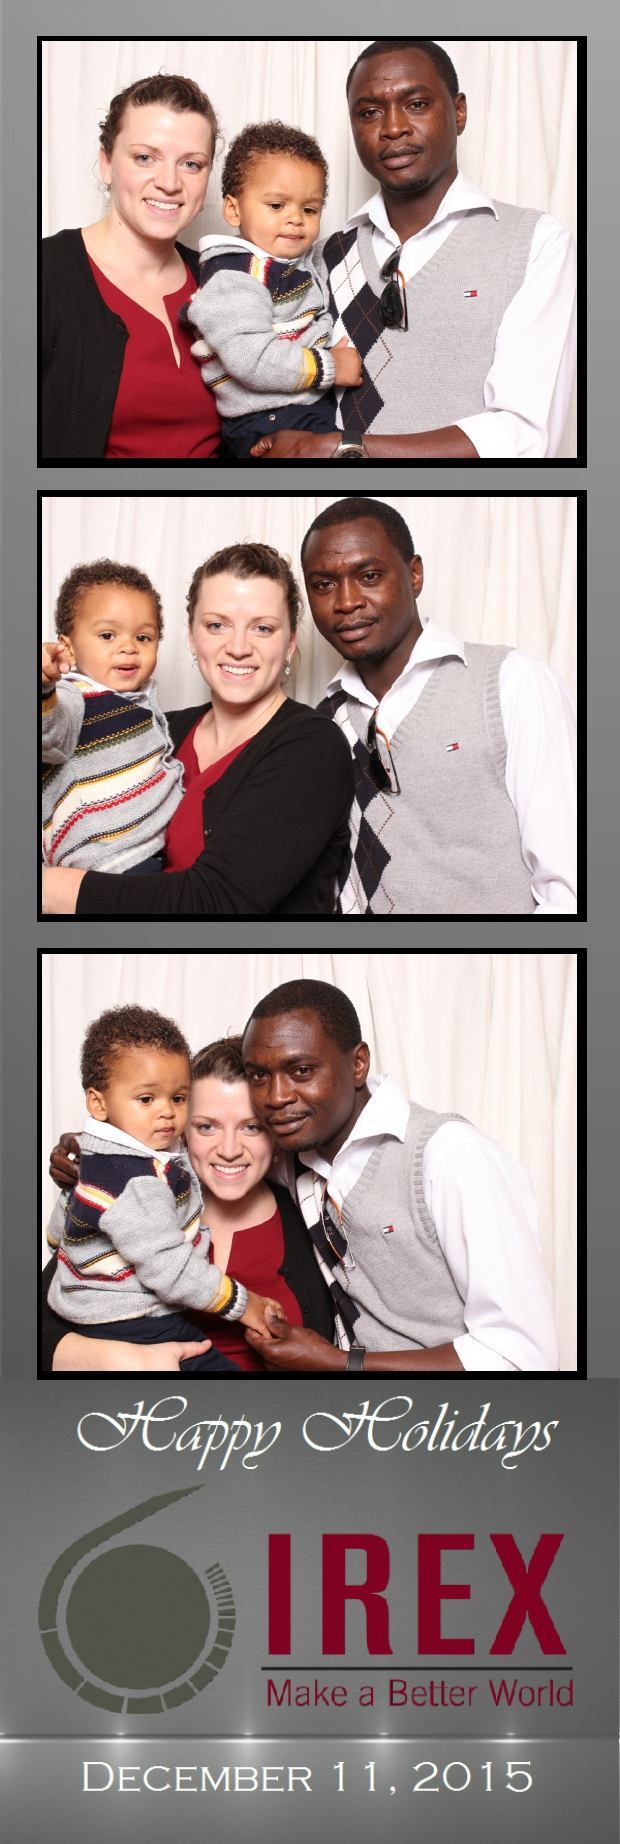 Guest House Events Photo Booth Strips IREX (17).jpg